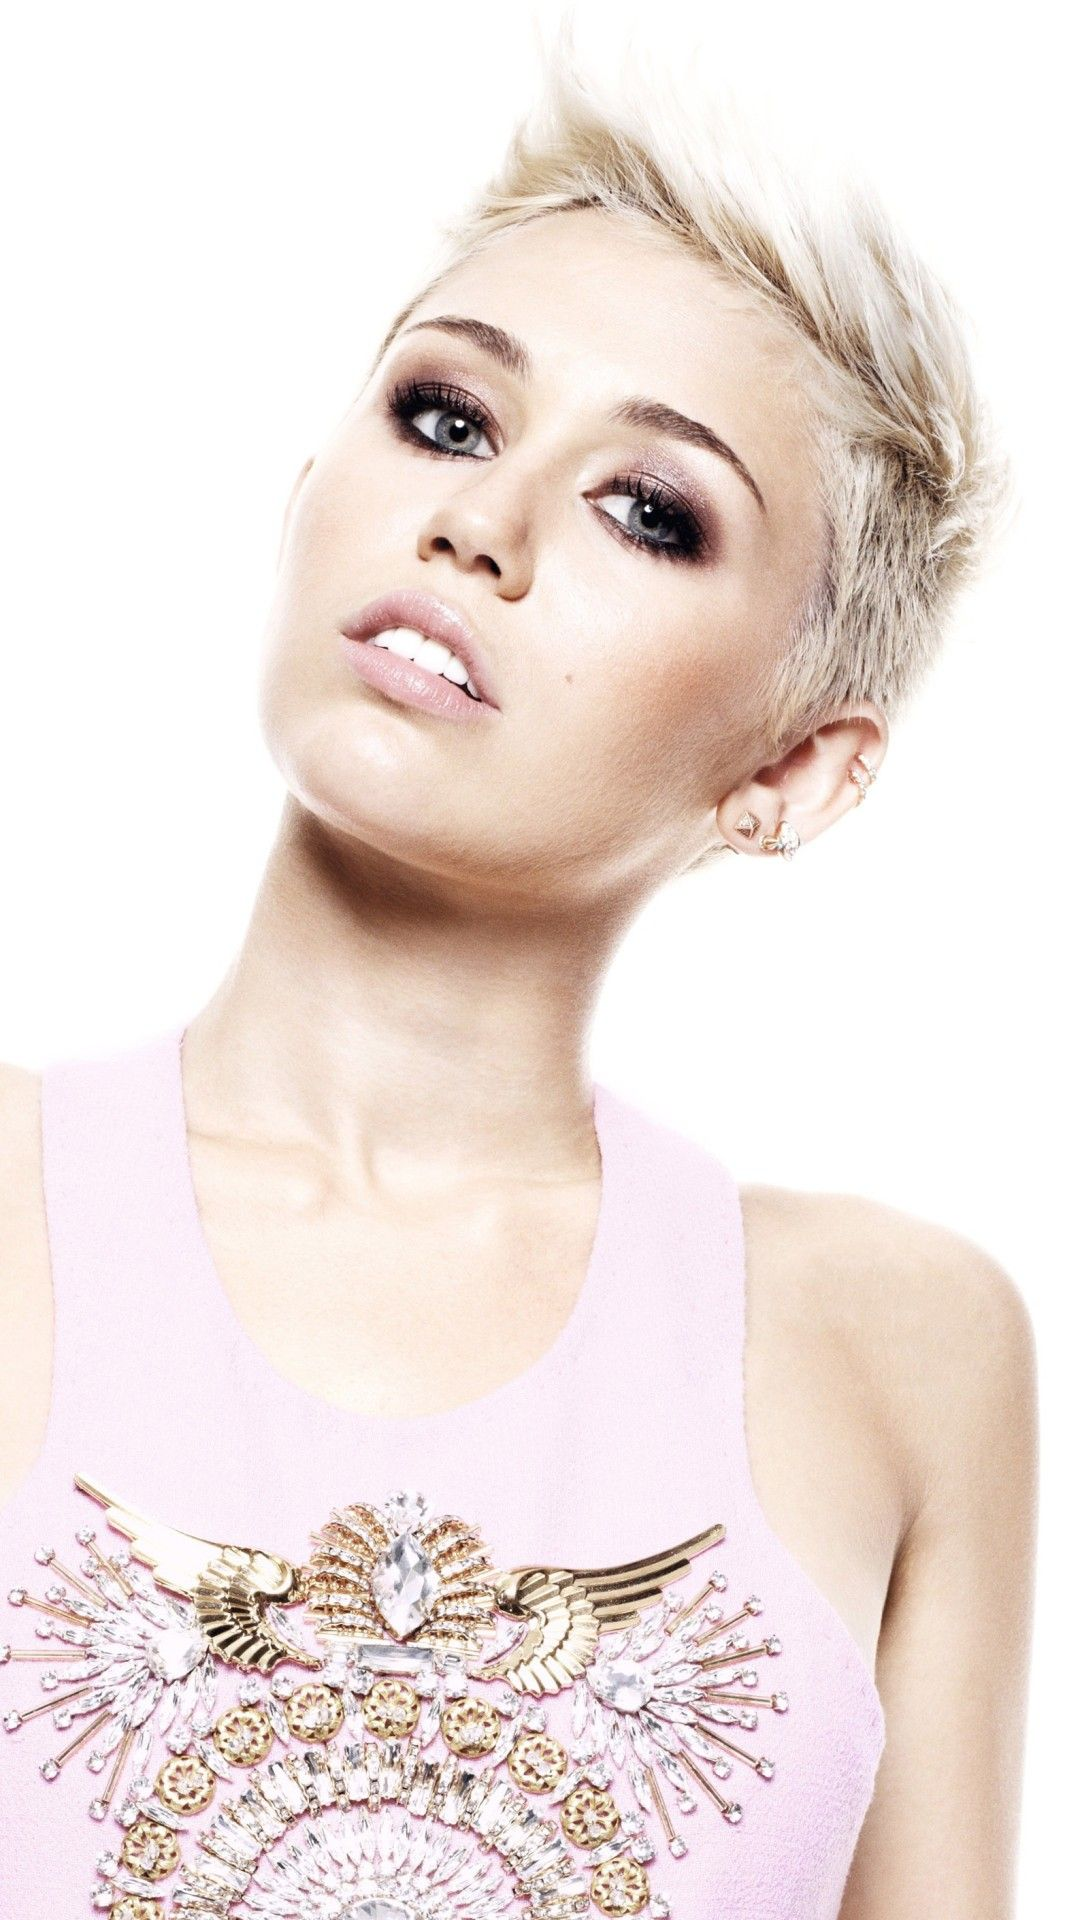 Wallpaper Phone Miley Cyrus Full Hd Miley Cyrus Blonde Singer Miley